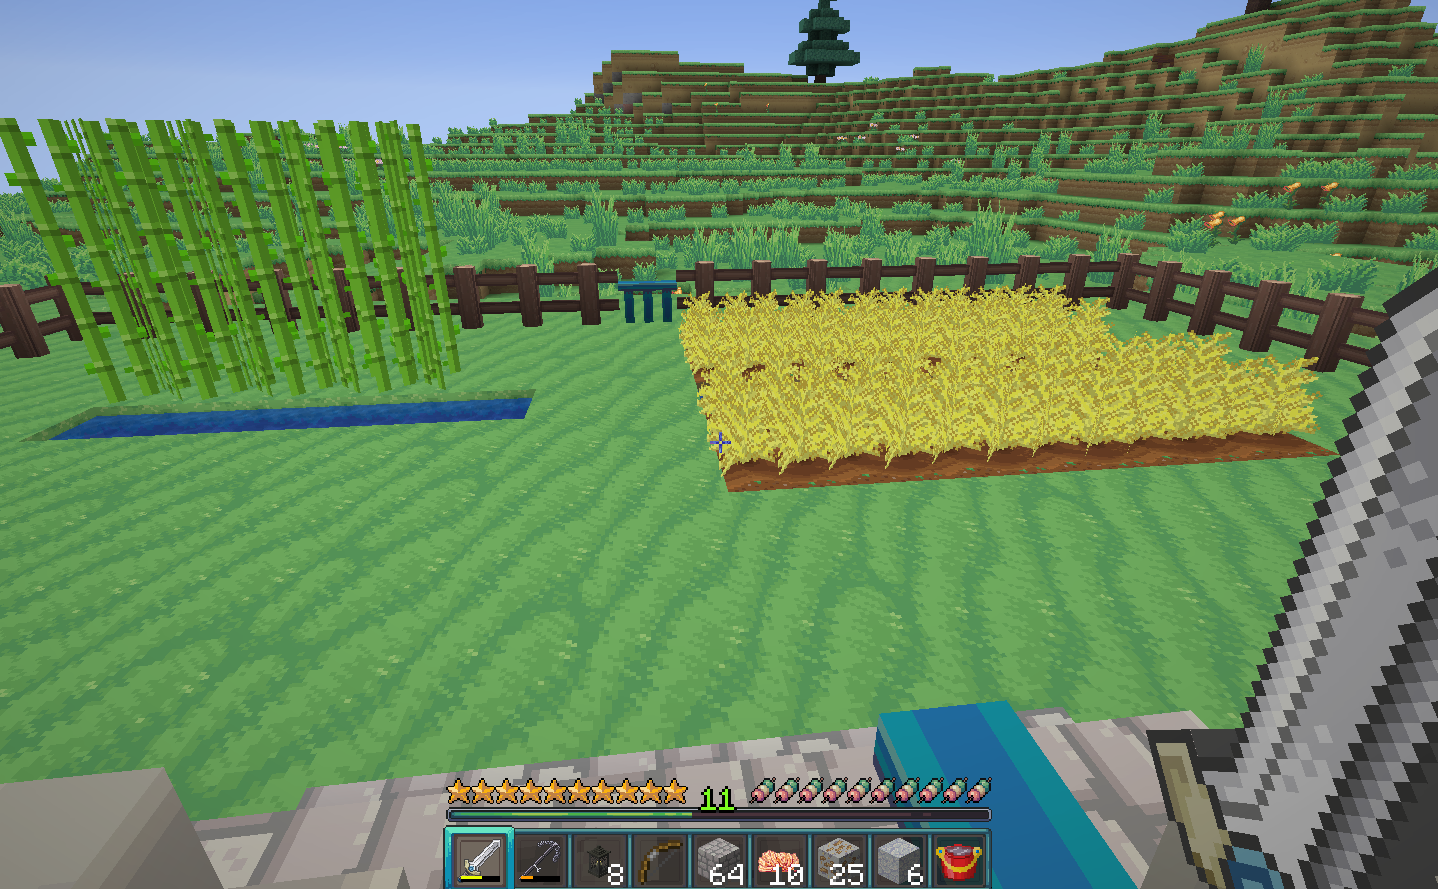 A view of crops in minecraft with the annahstas Resource Pack textures